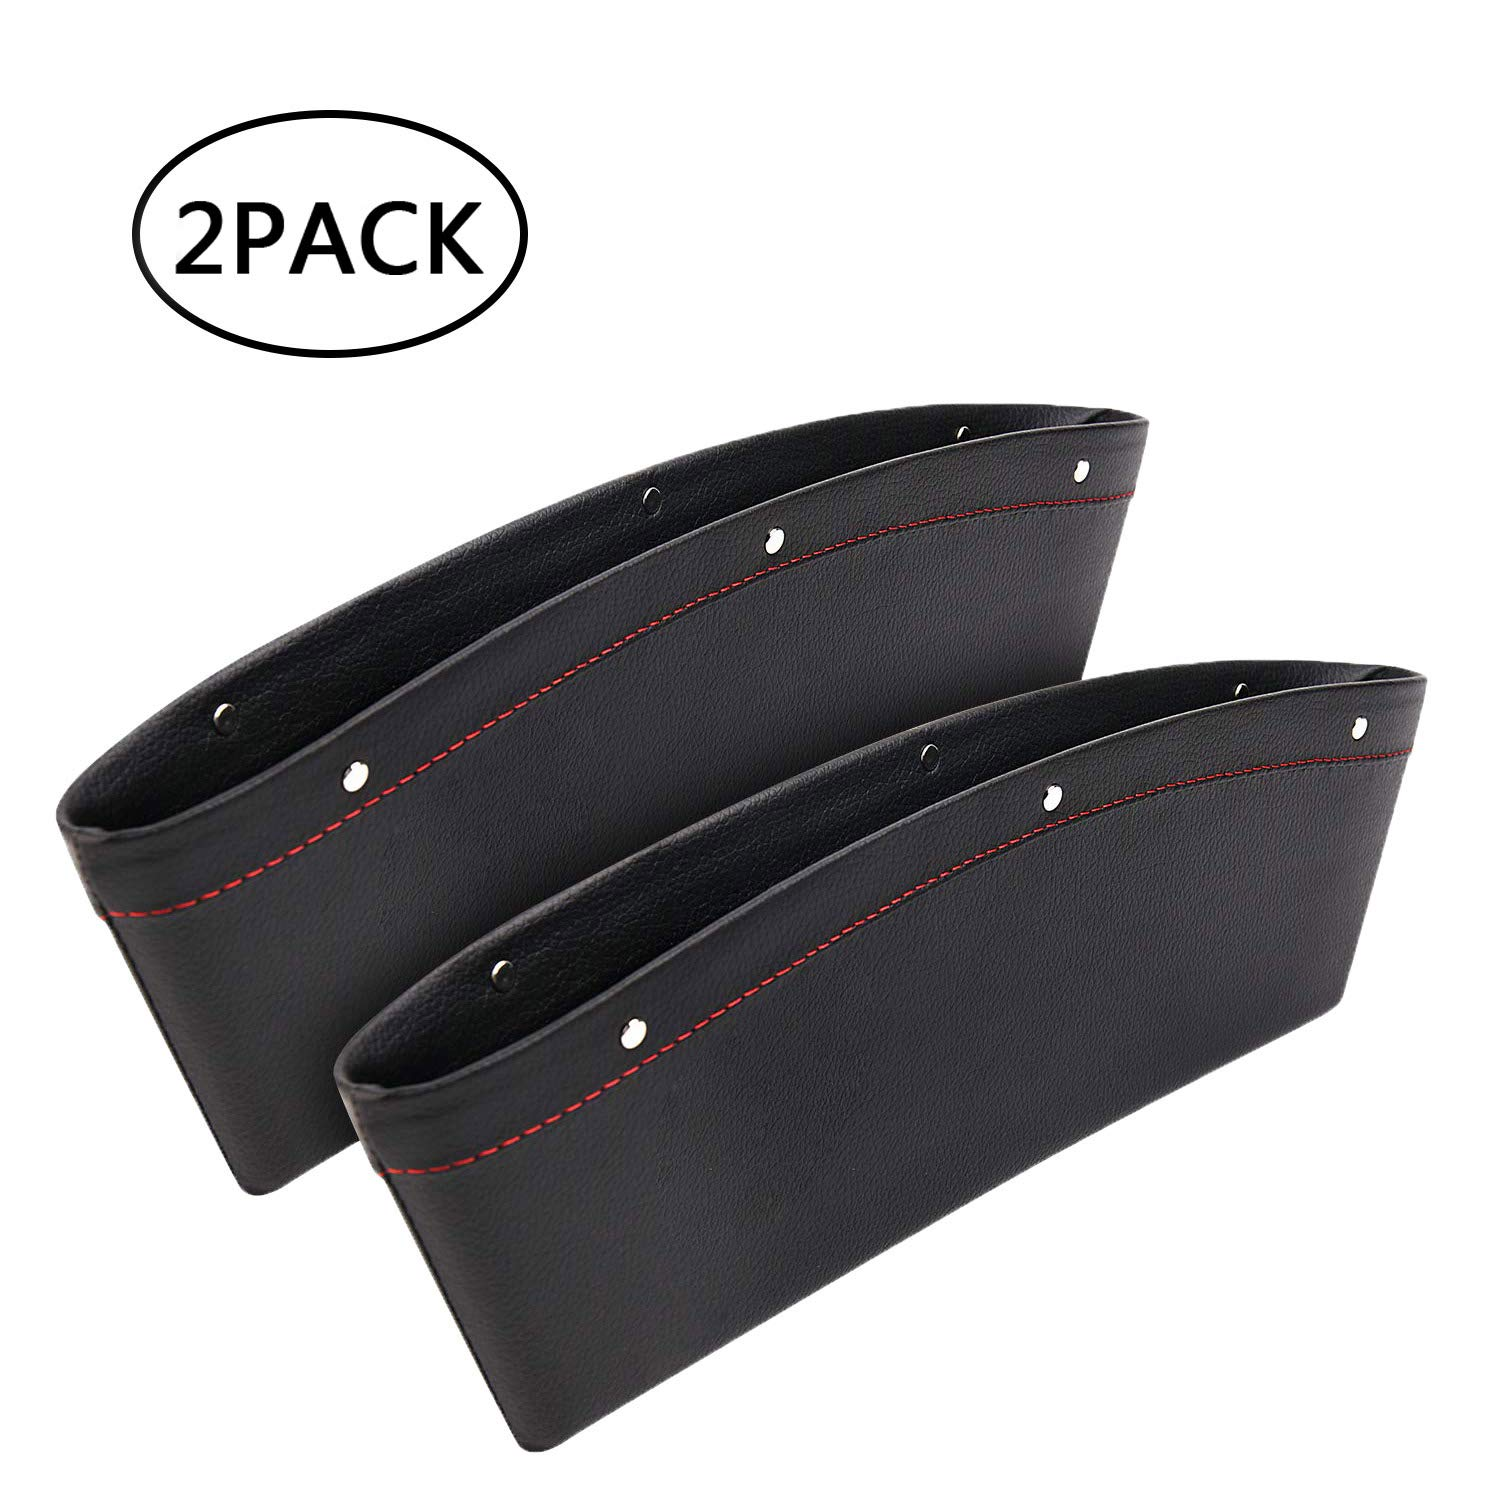 Car Interior Accessories Car Seat Pockets Organizer Caddy Catcher Auto Filler Gap PU Leather Car Console Side Organizer for Cellphone Wallet Coin Key Credit Card Black-2 Pack